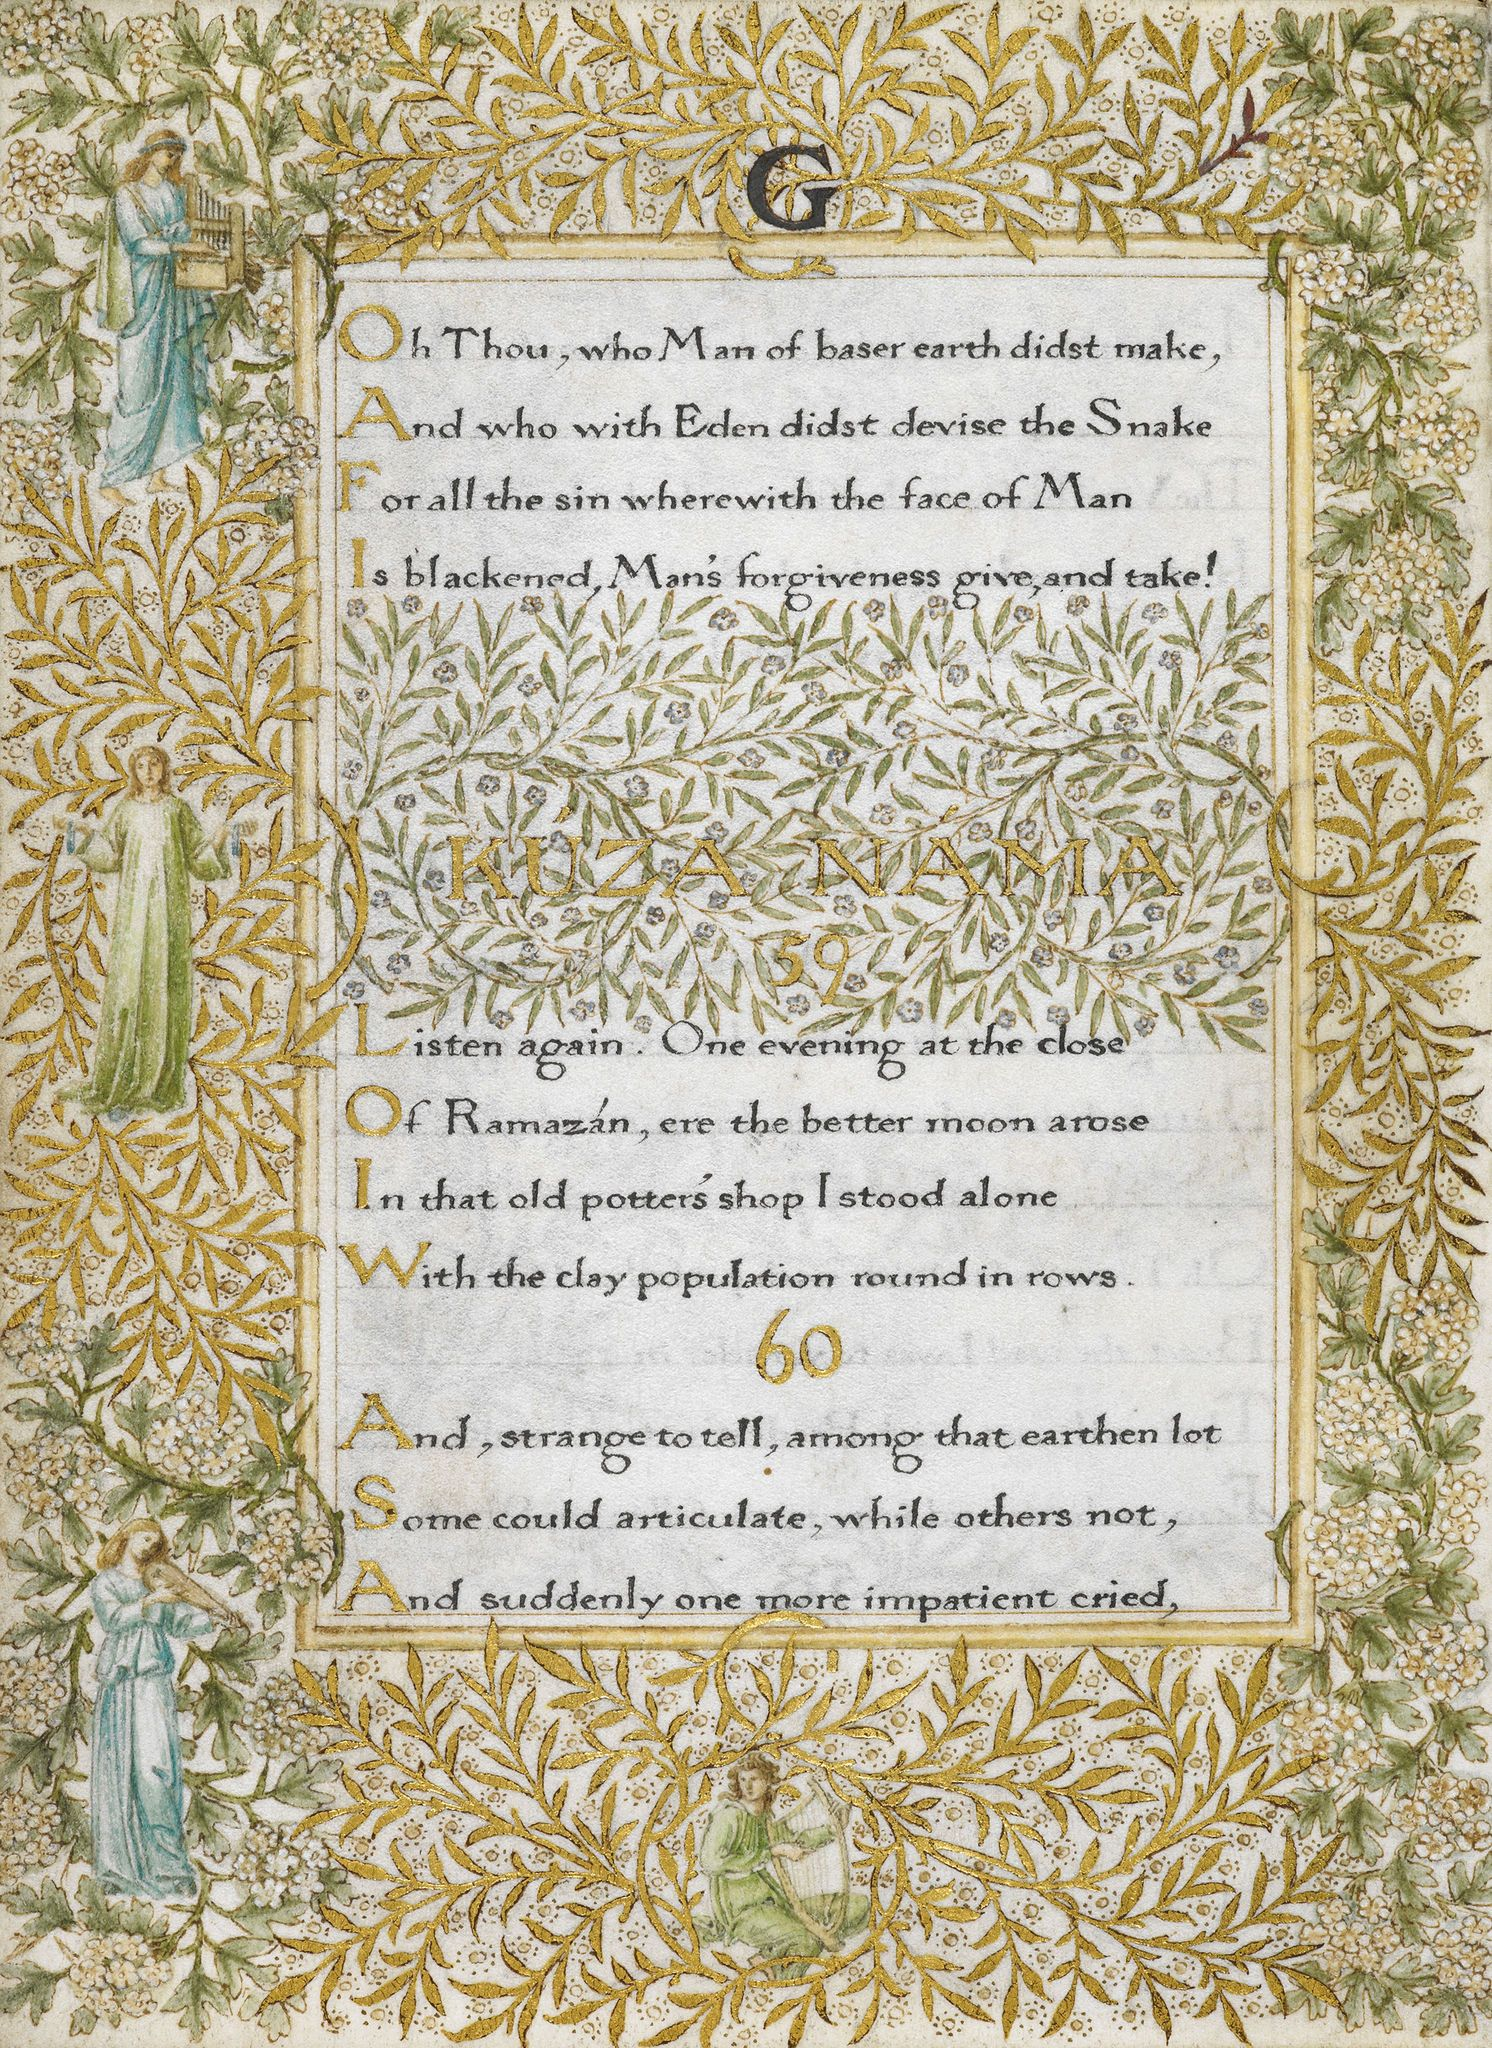 Edward Fitzgerald,Rubaiyat of Omar Khayyam, 16 October 1872,ink, watercolor and gilding on vellum,open: 13.5 x 23.5 cm (5 5/16 x 9 1/4 in.).The British Library, London